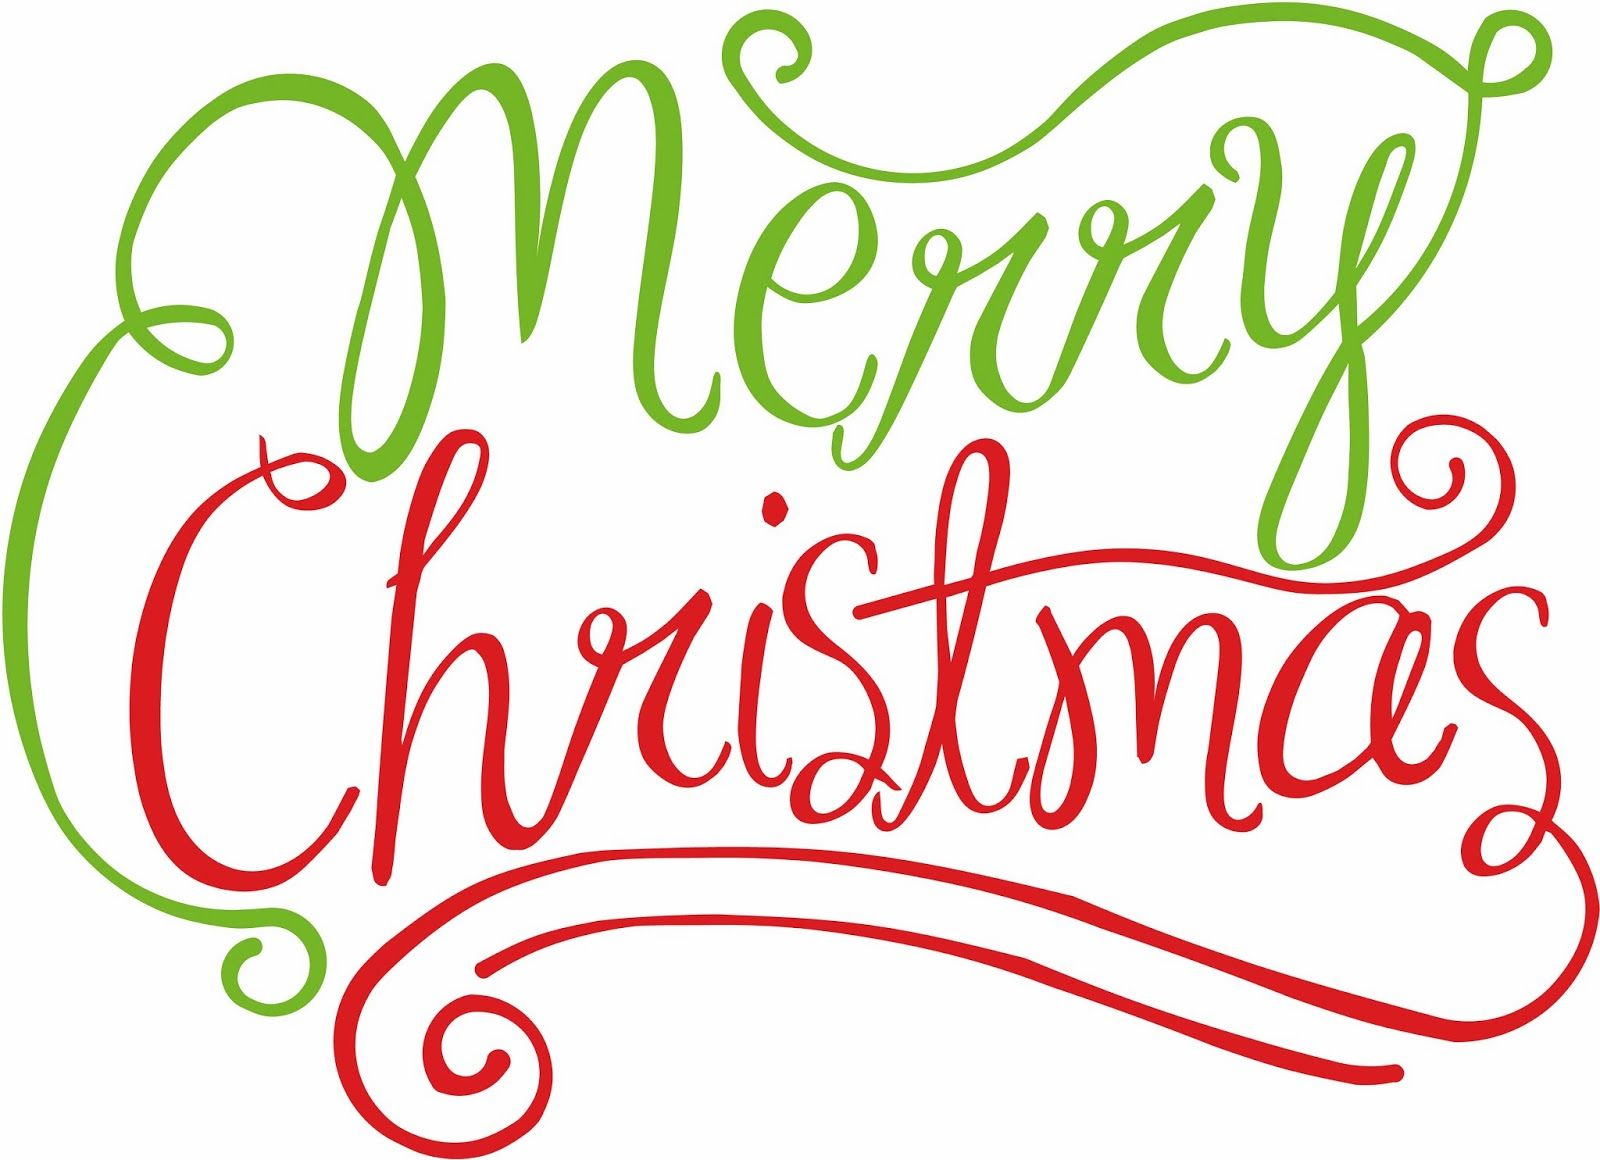 Merry Christmas SVG Cut File.